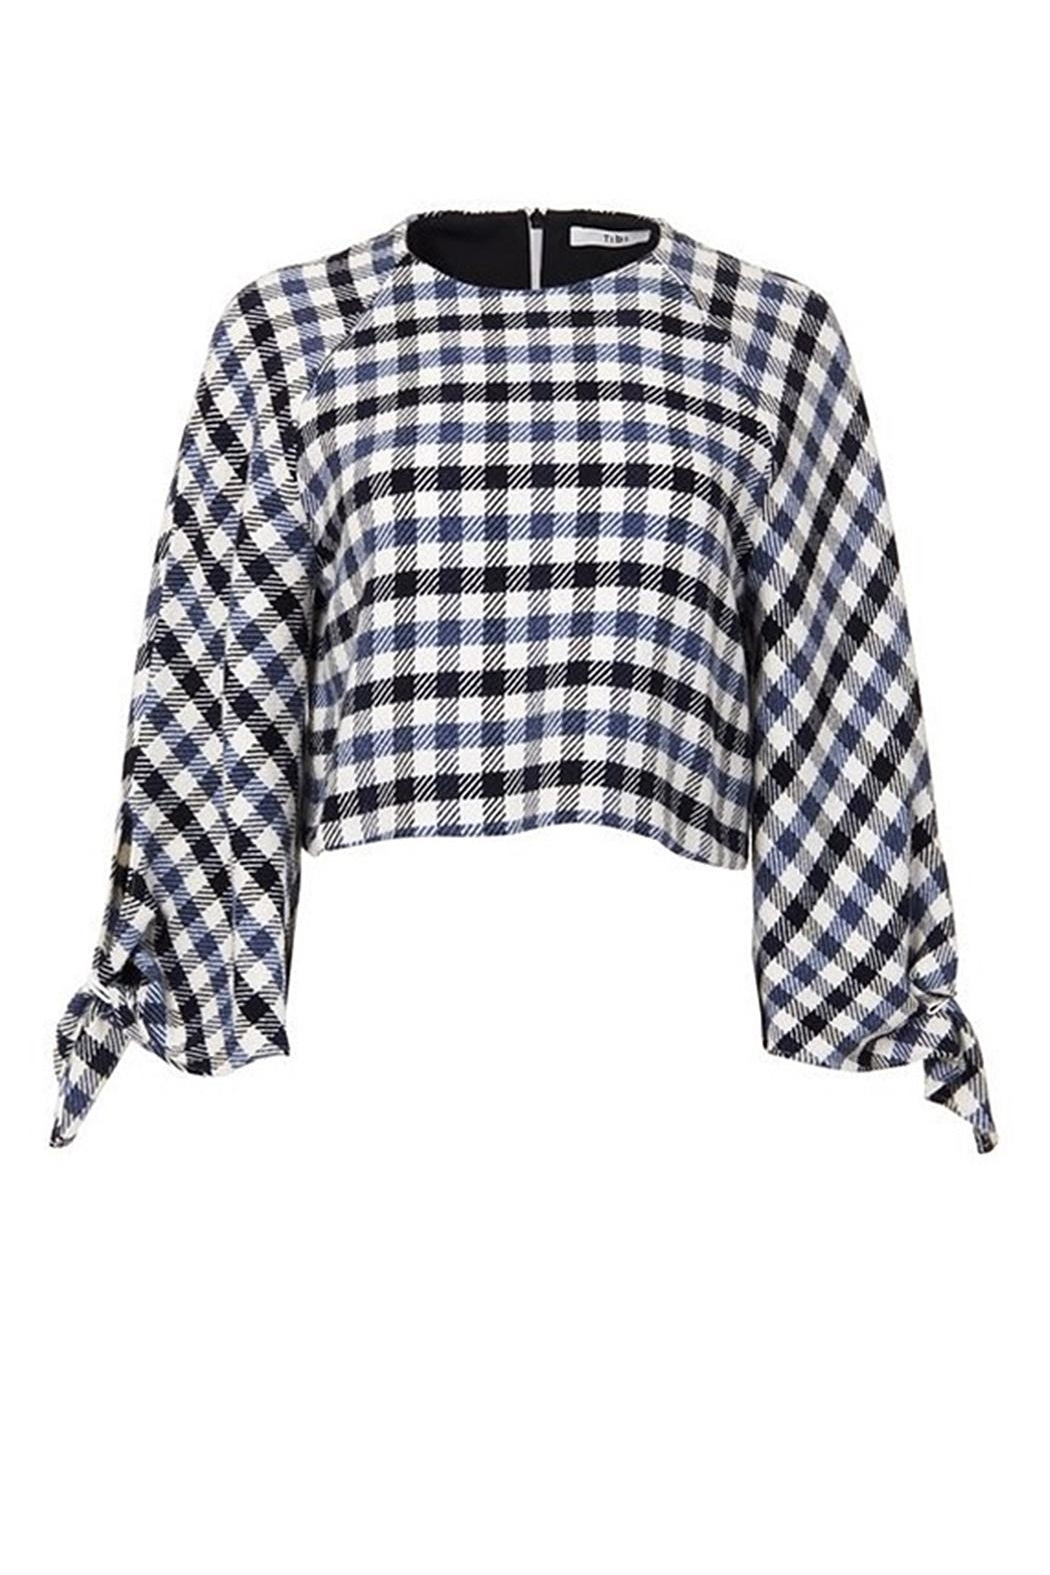 Tibi Fairfax Gingham Top - Main Image